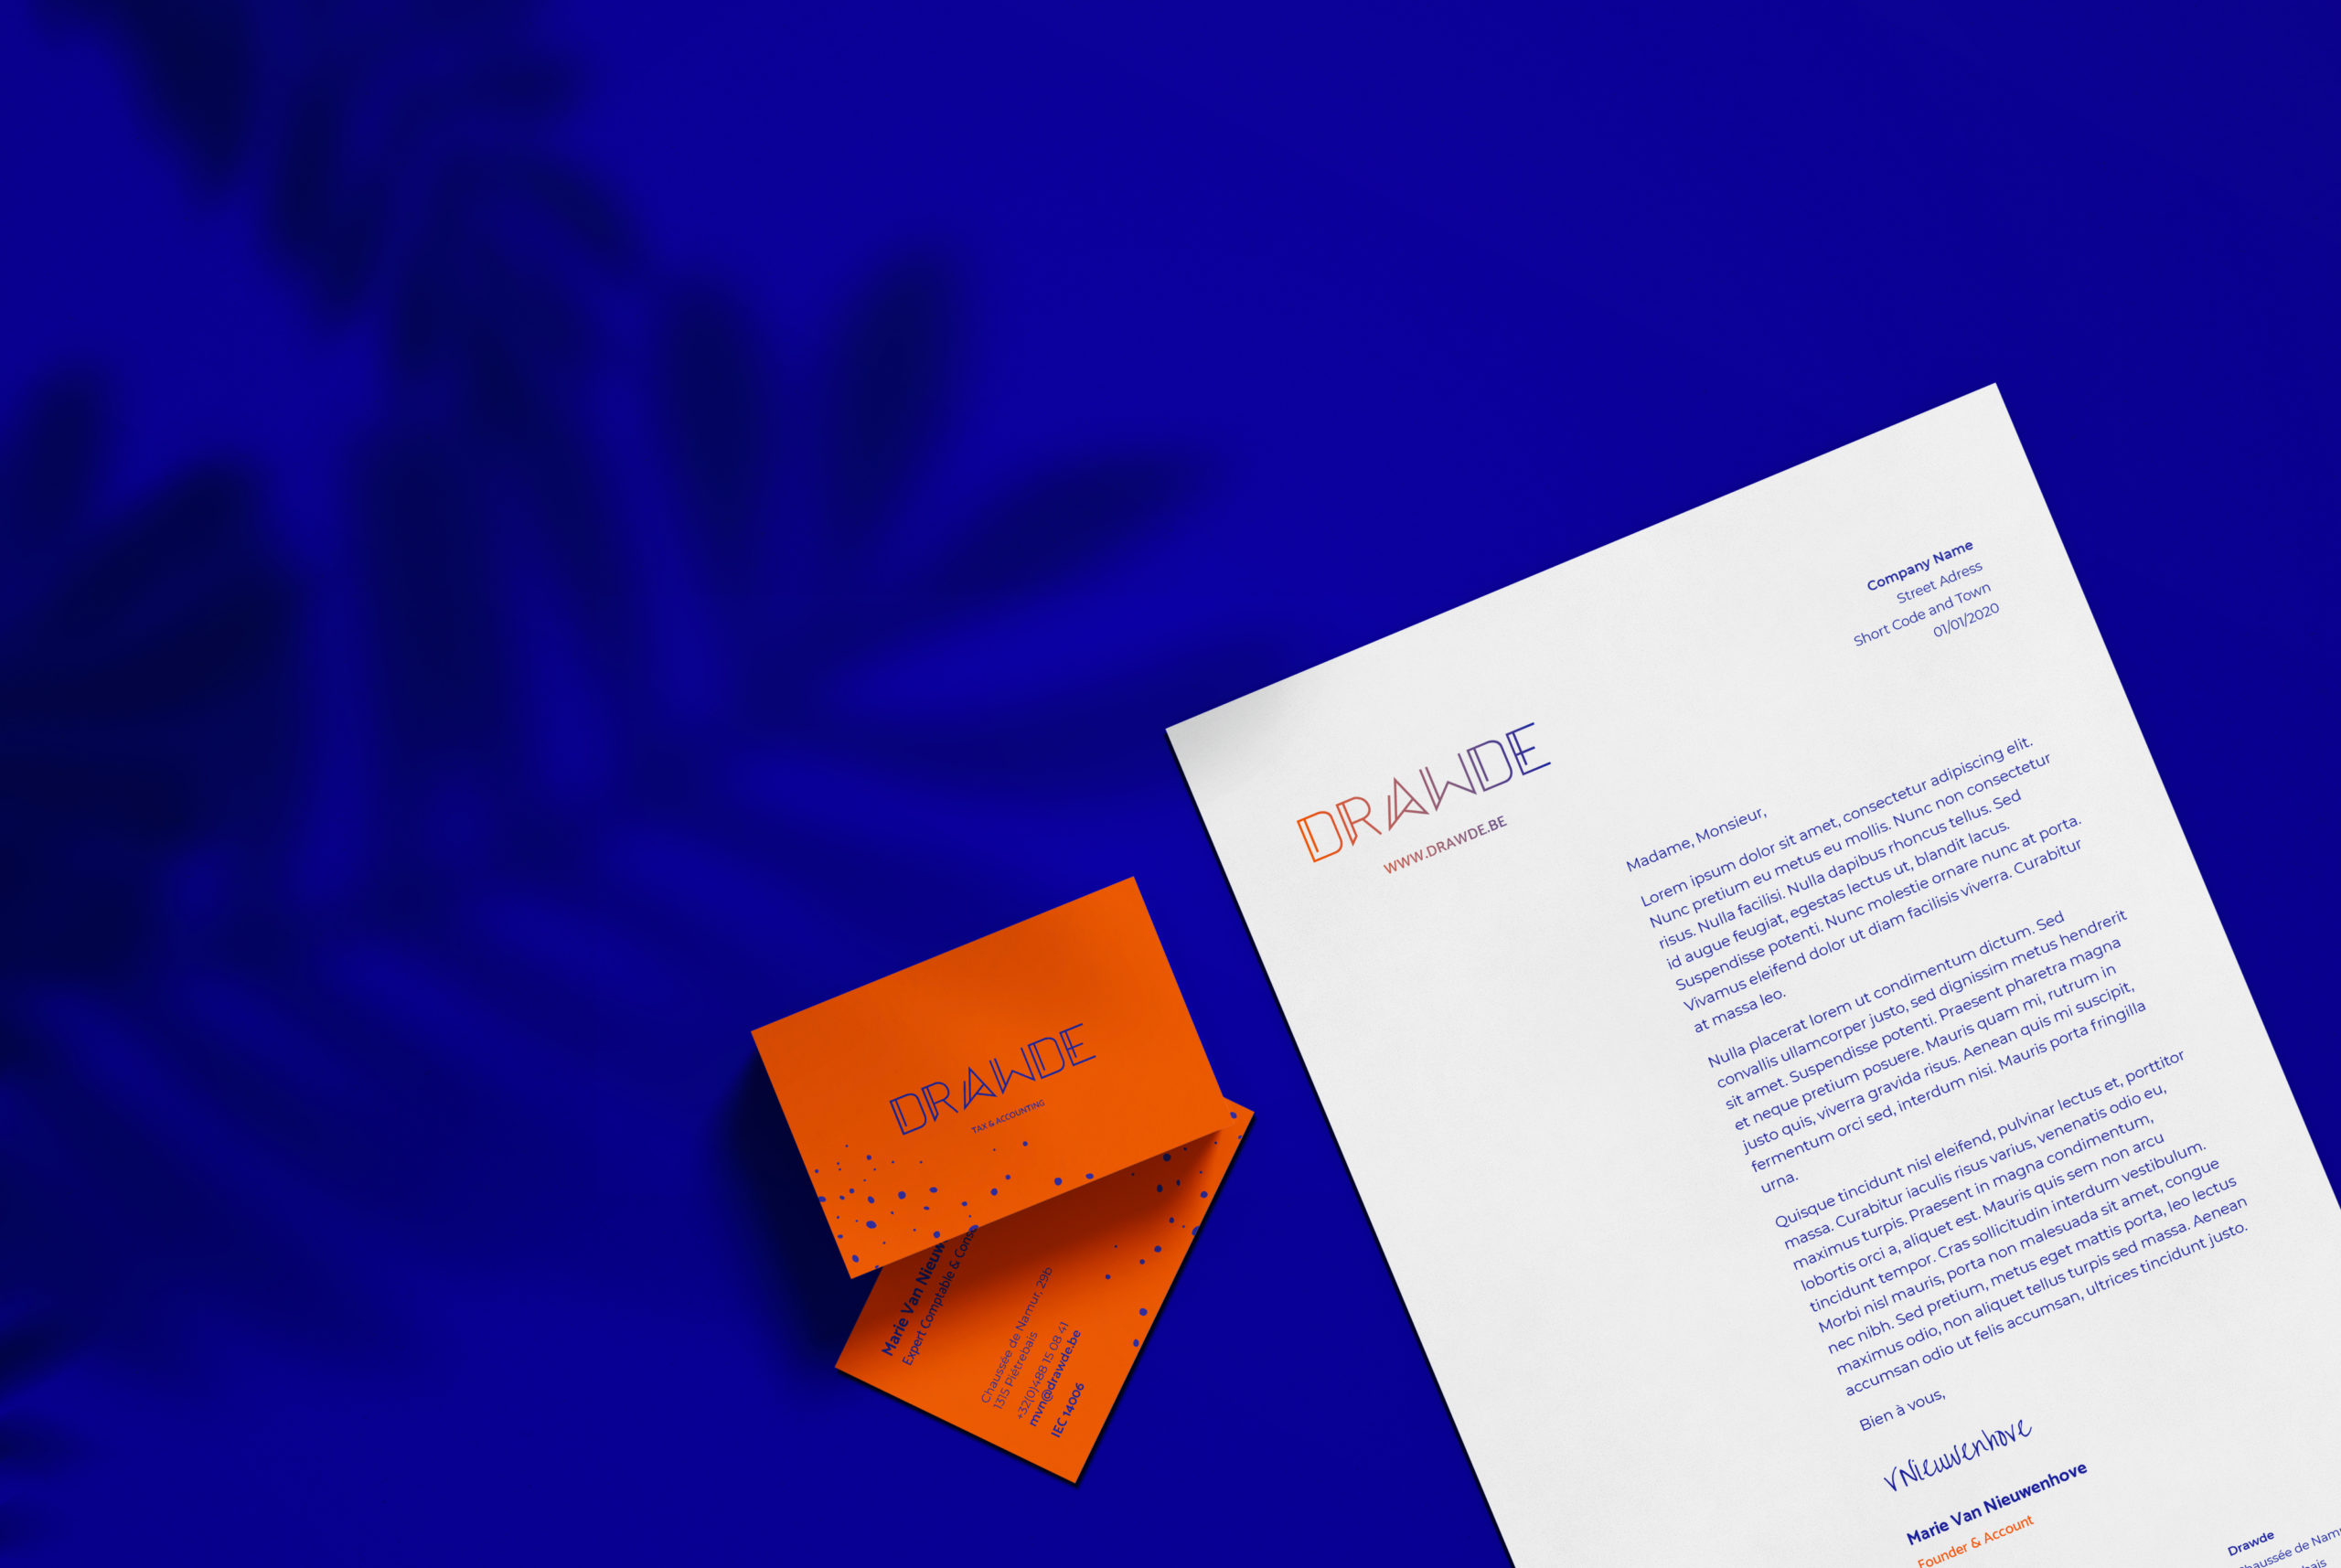 Drawde letter and business cards.